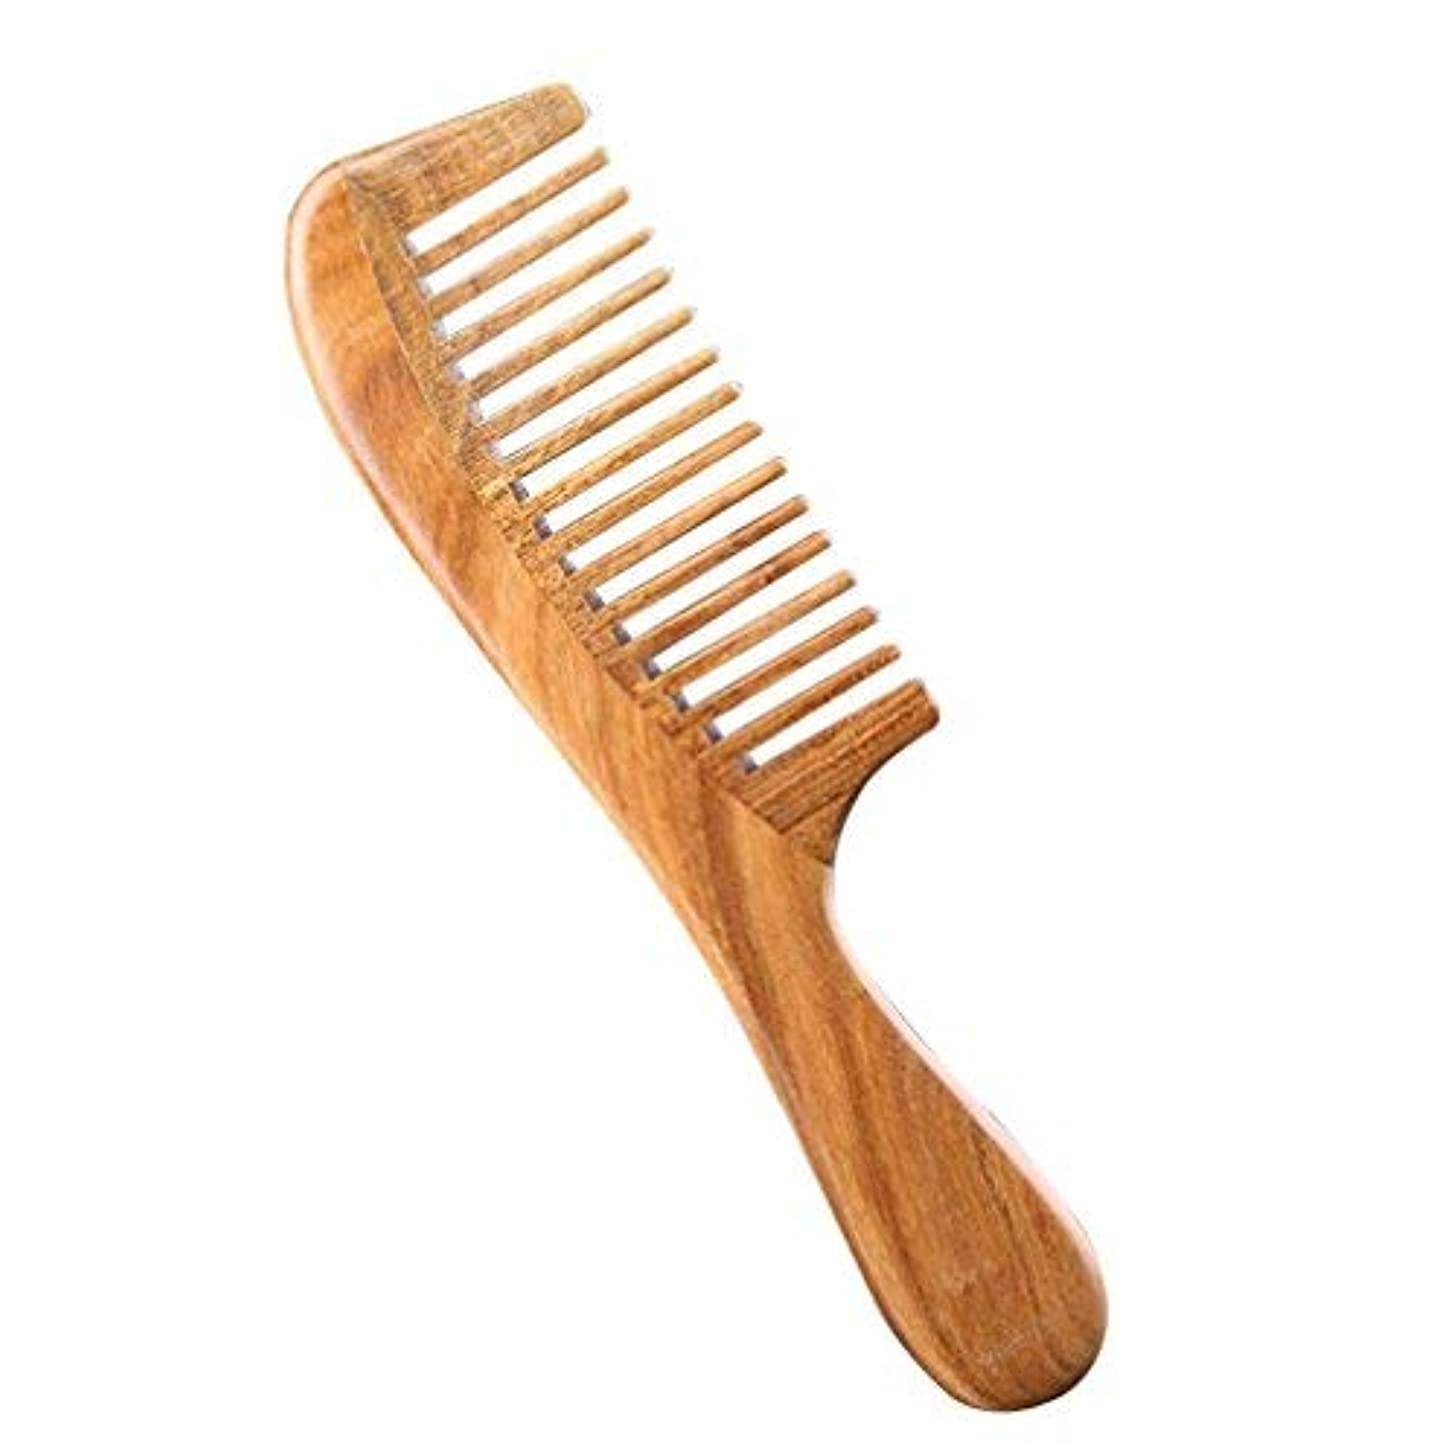 オーラルスコットランド人スナックPevor Green Sandalwood Hair Comb Anti-Static Wide-Tooth with Smooth Handle Natural Hand Made Scalp Massager Hair Care Tools Houseware Great Gift for Lady [並行輸入品]